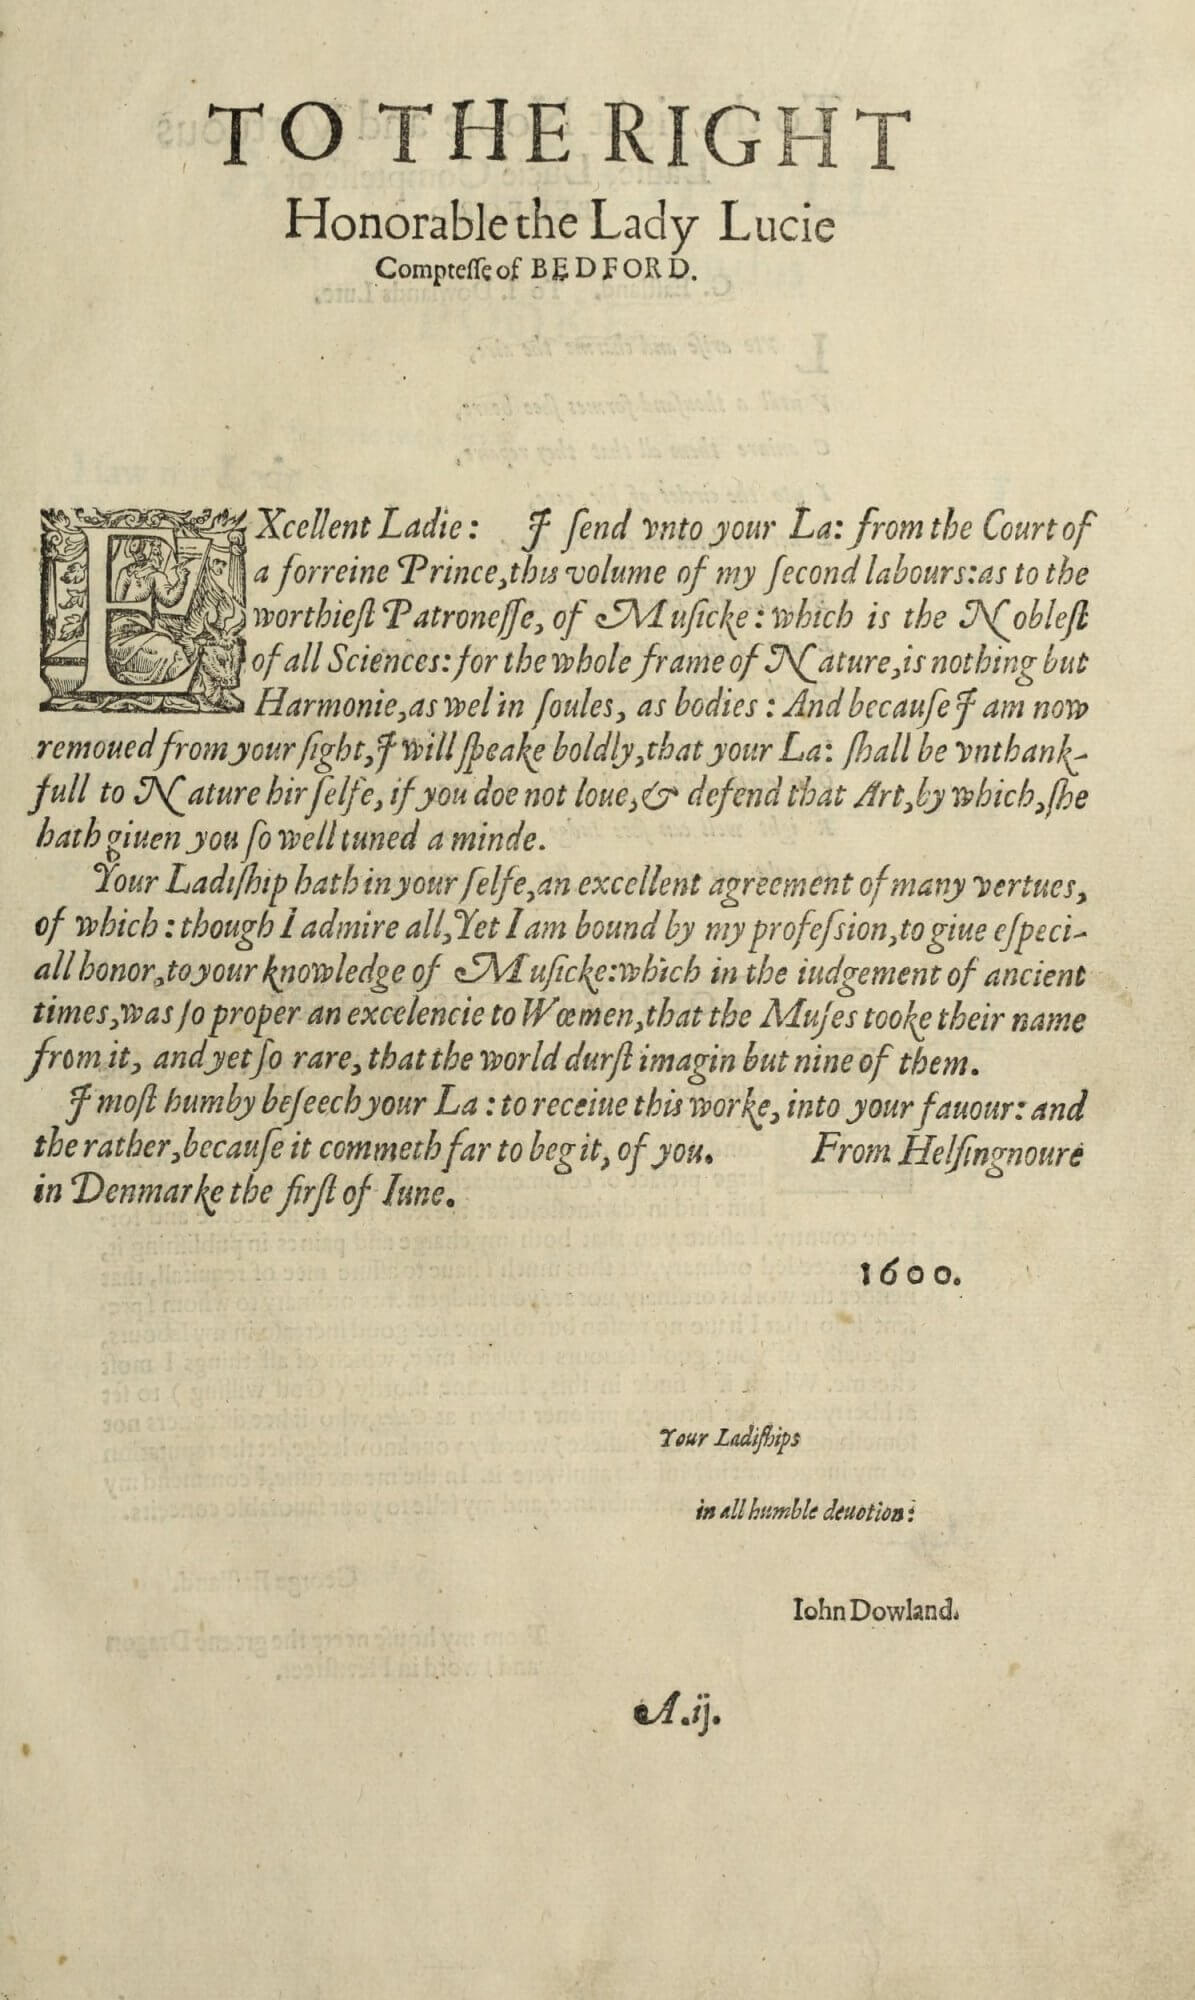 Dowland's dedicatory letter to the Countess of Bedford follows a layout that mirrors manuscript letters; note that his signature is set in a lowly and humble position at the bottom of the page.